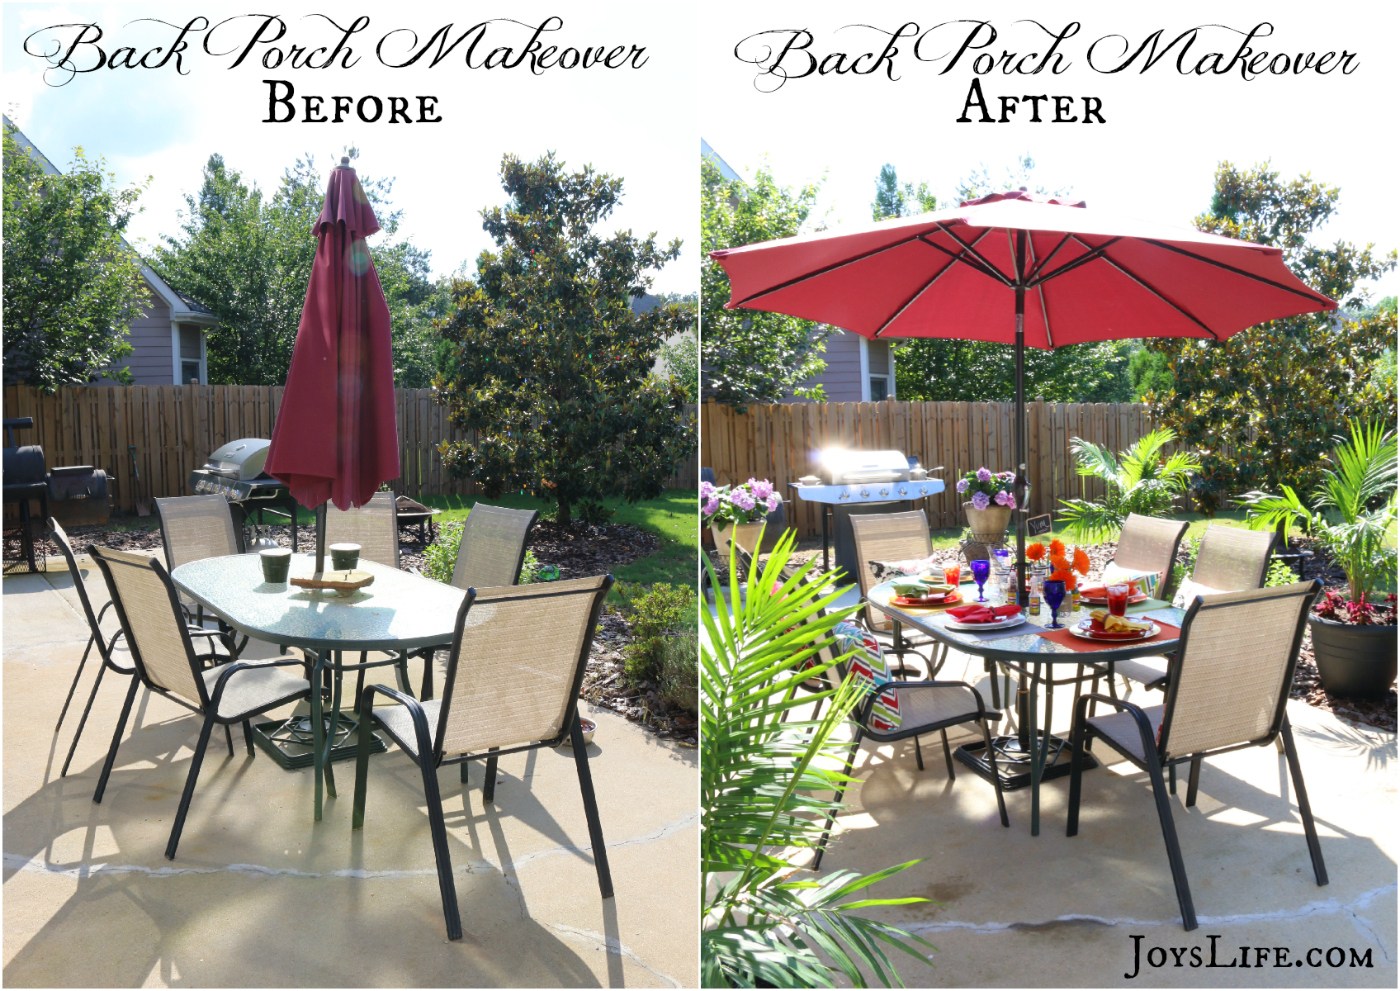 Back Porch Makeover Before and After #KingOfFlavor #Ad